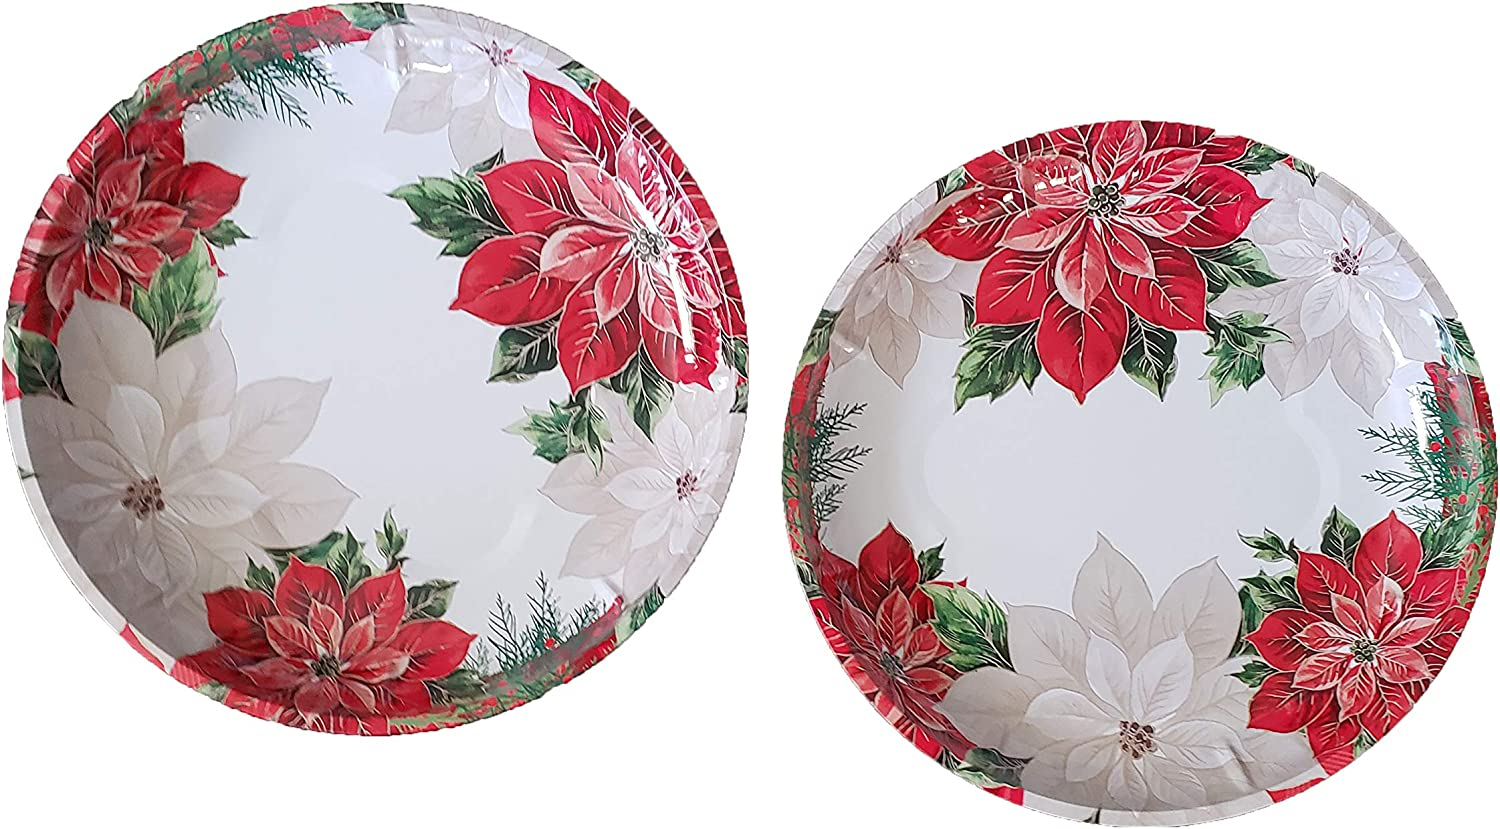 Festive Christmas Holiday Poinsettia Printed Round Tin Serving Trays, 10 in. - 2 CT